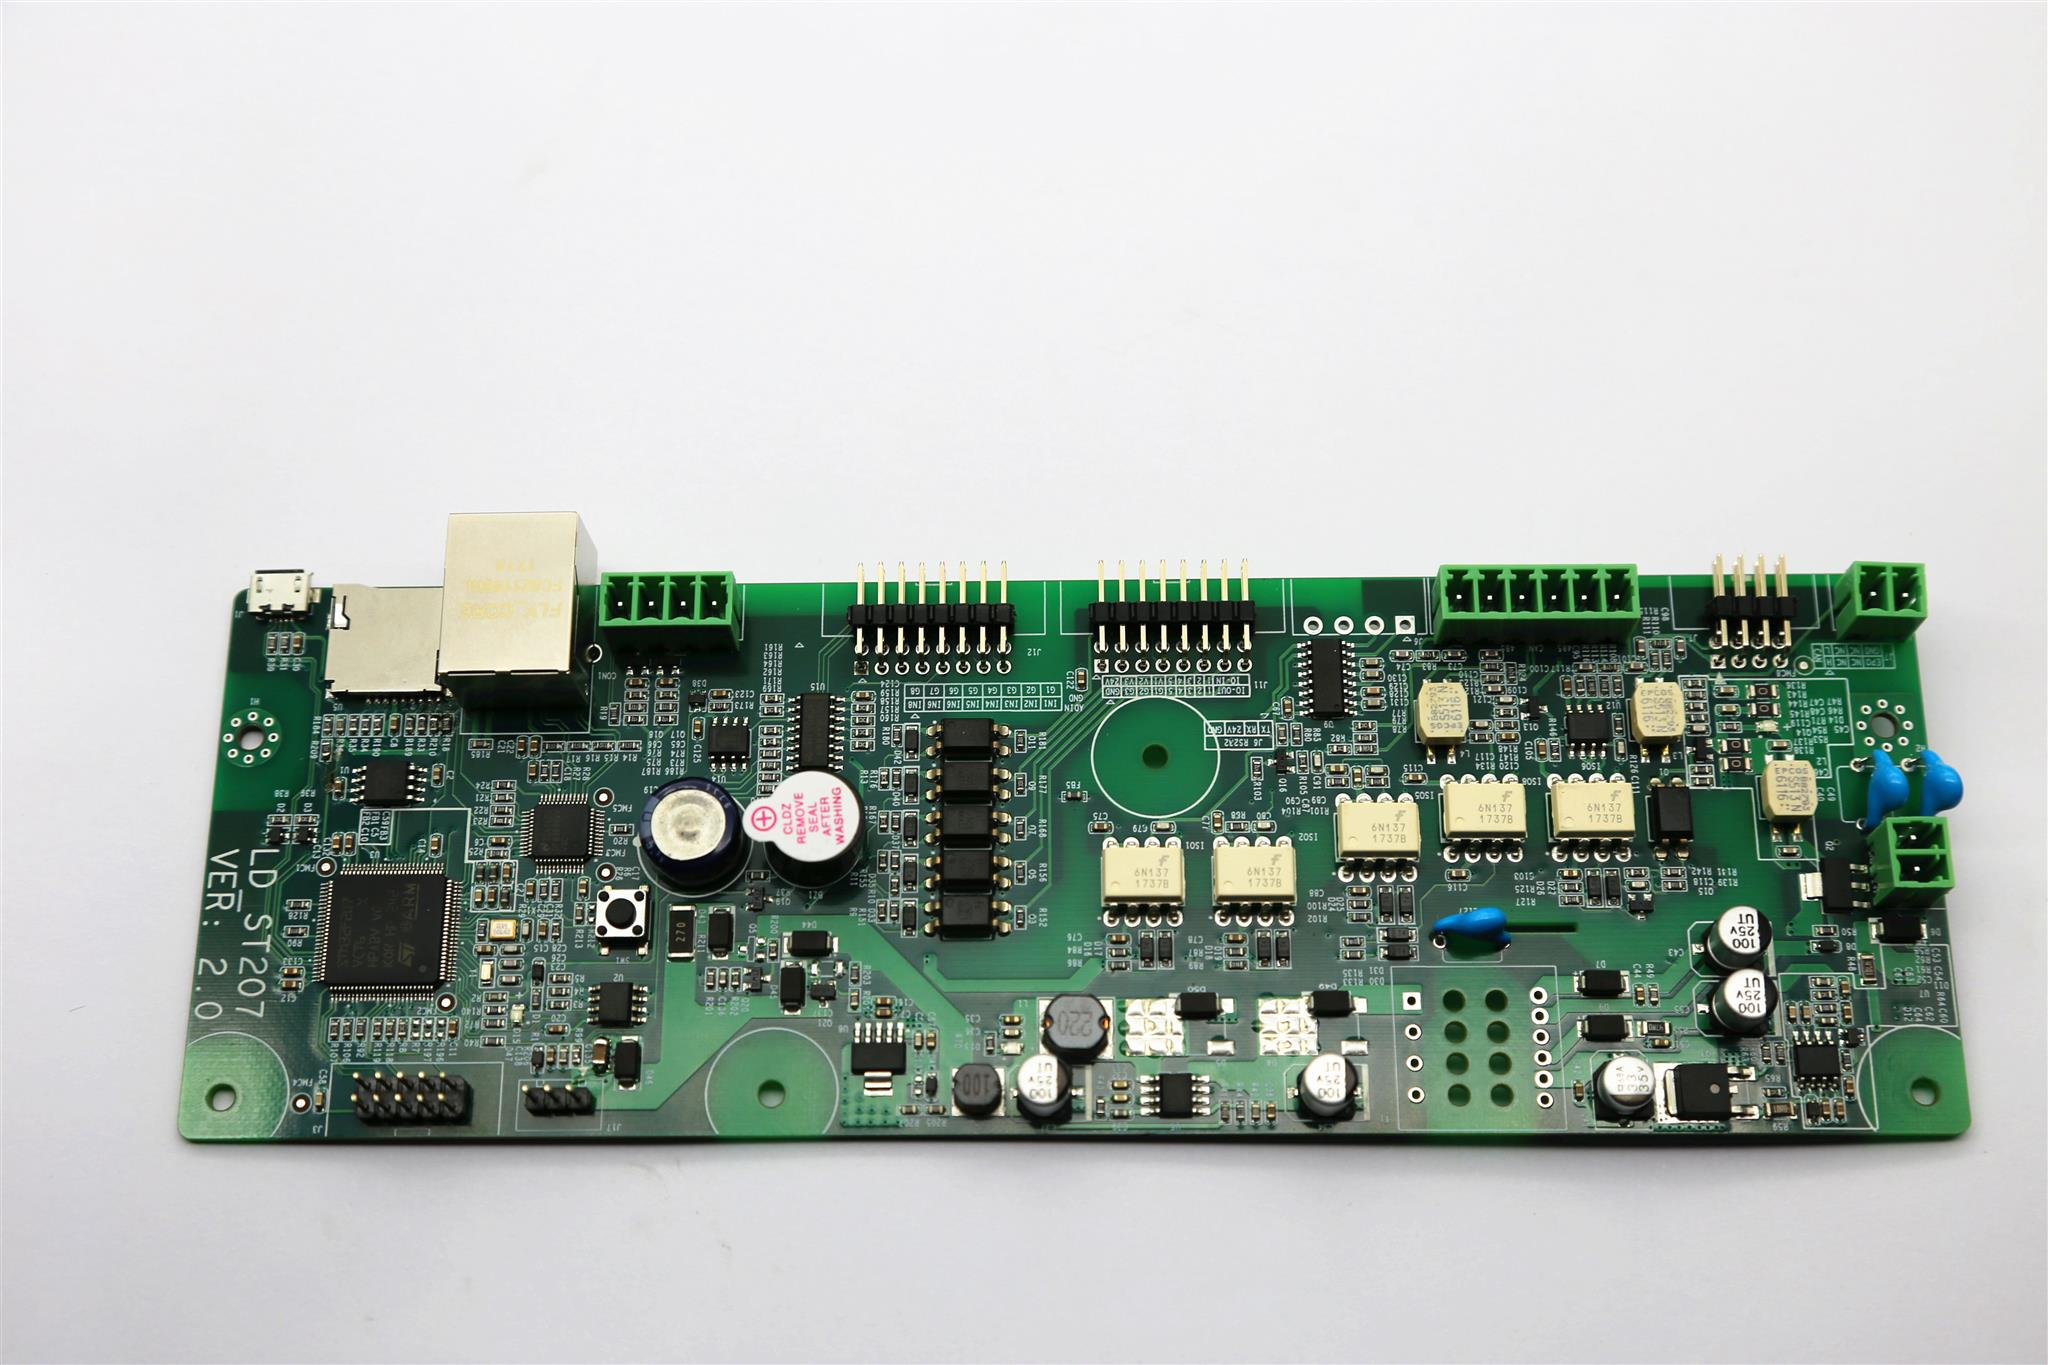 Pcbgogo A Professional Pcb Prototype And Assembly Manufacturer We Now Also Picture Of The First Board For This Circuit Has Brought In Panel Machine Its Latest Design Automatic Control With Plc Which Is Not Only Realizing